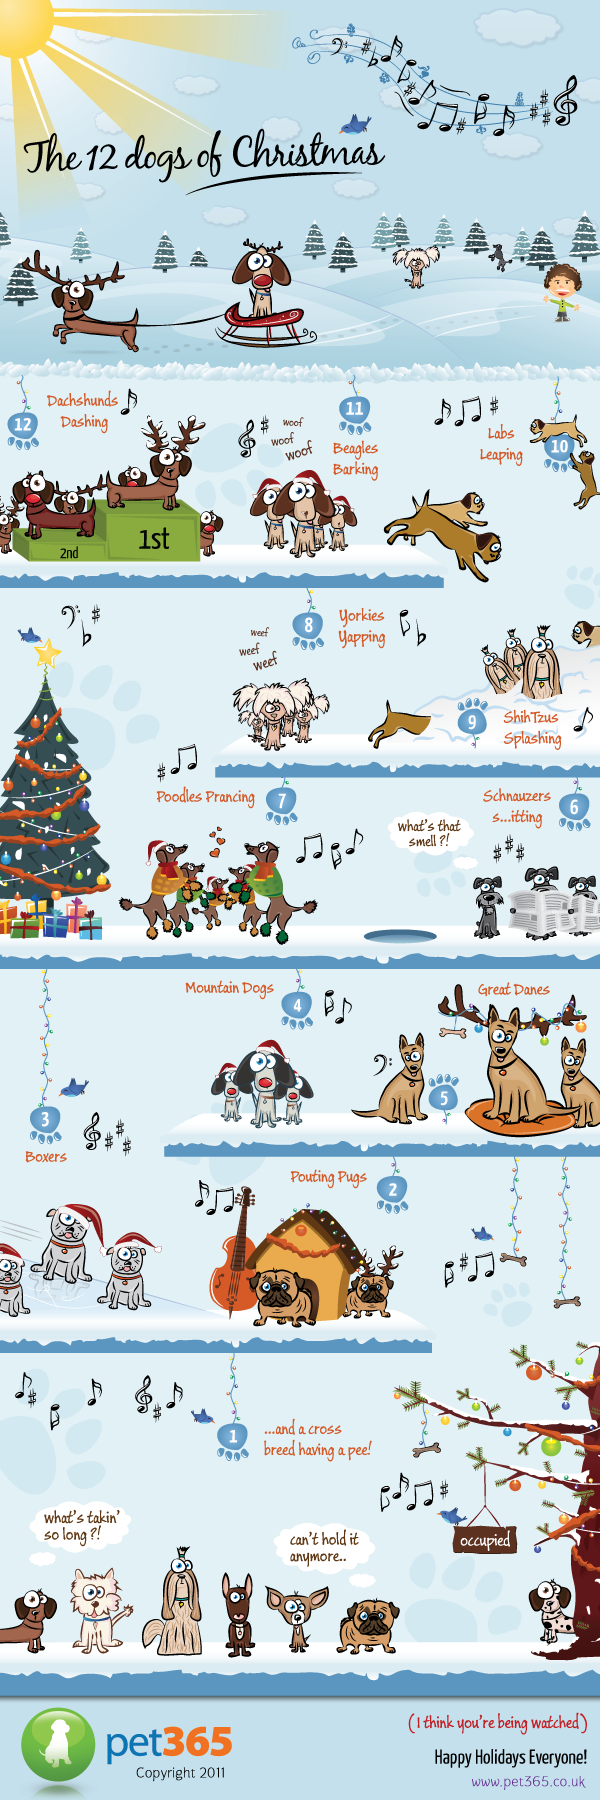 12-dogs-of-christmas.png